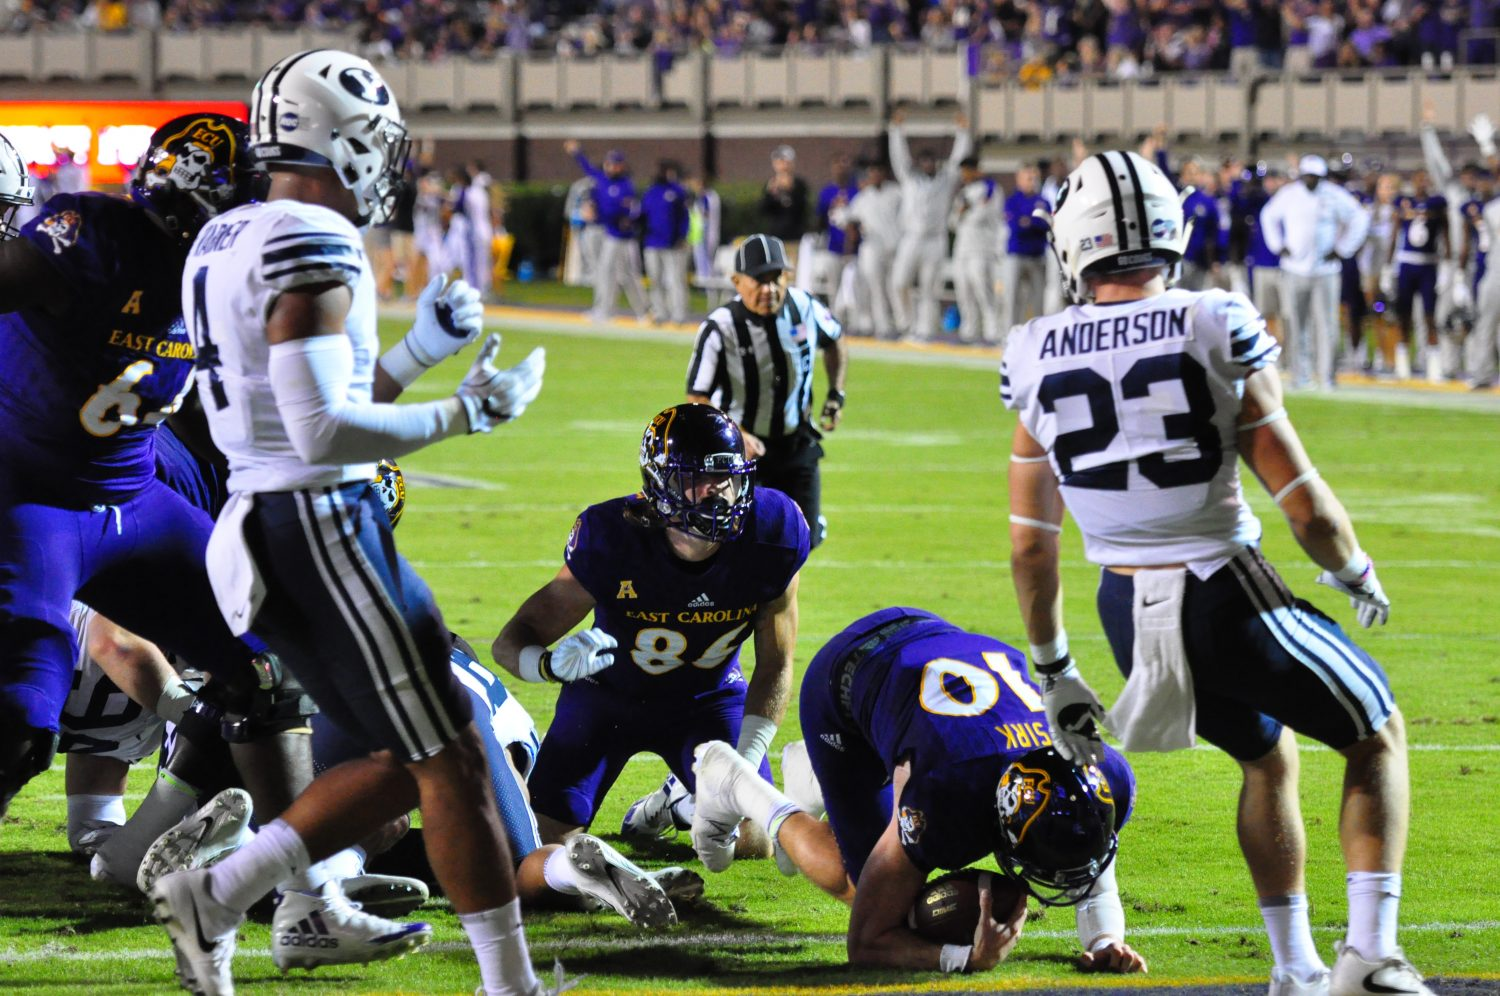 ECU quarterback Thomas Sirk cradles the ball in the end zone after scoring on a 4th-and-goal play at the BYU 1-yard line for the Pirates' first touchdown Saturday night. (Photo by Al Myatt)